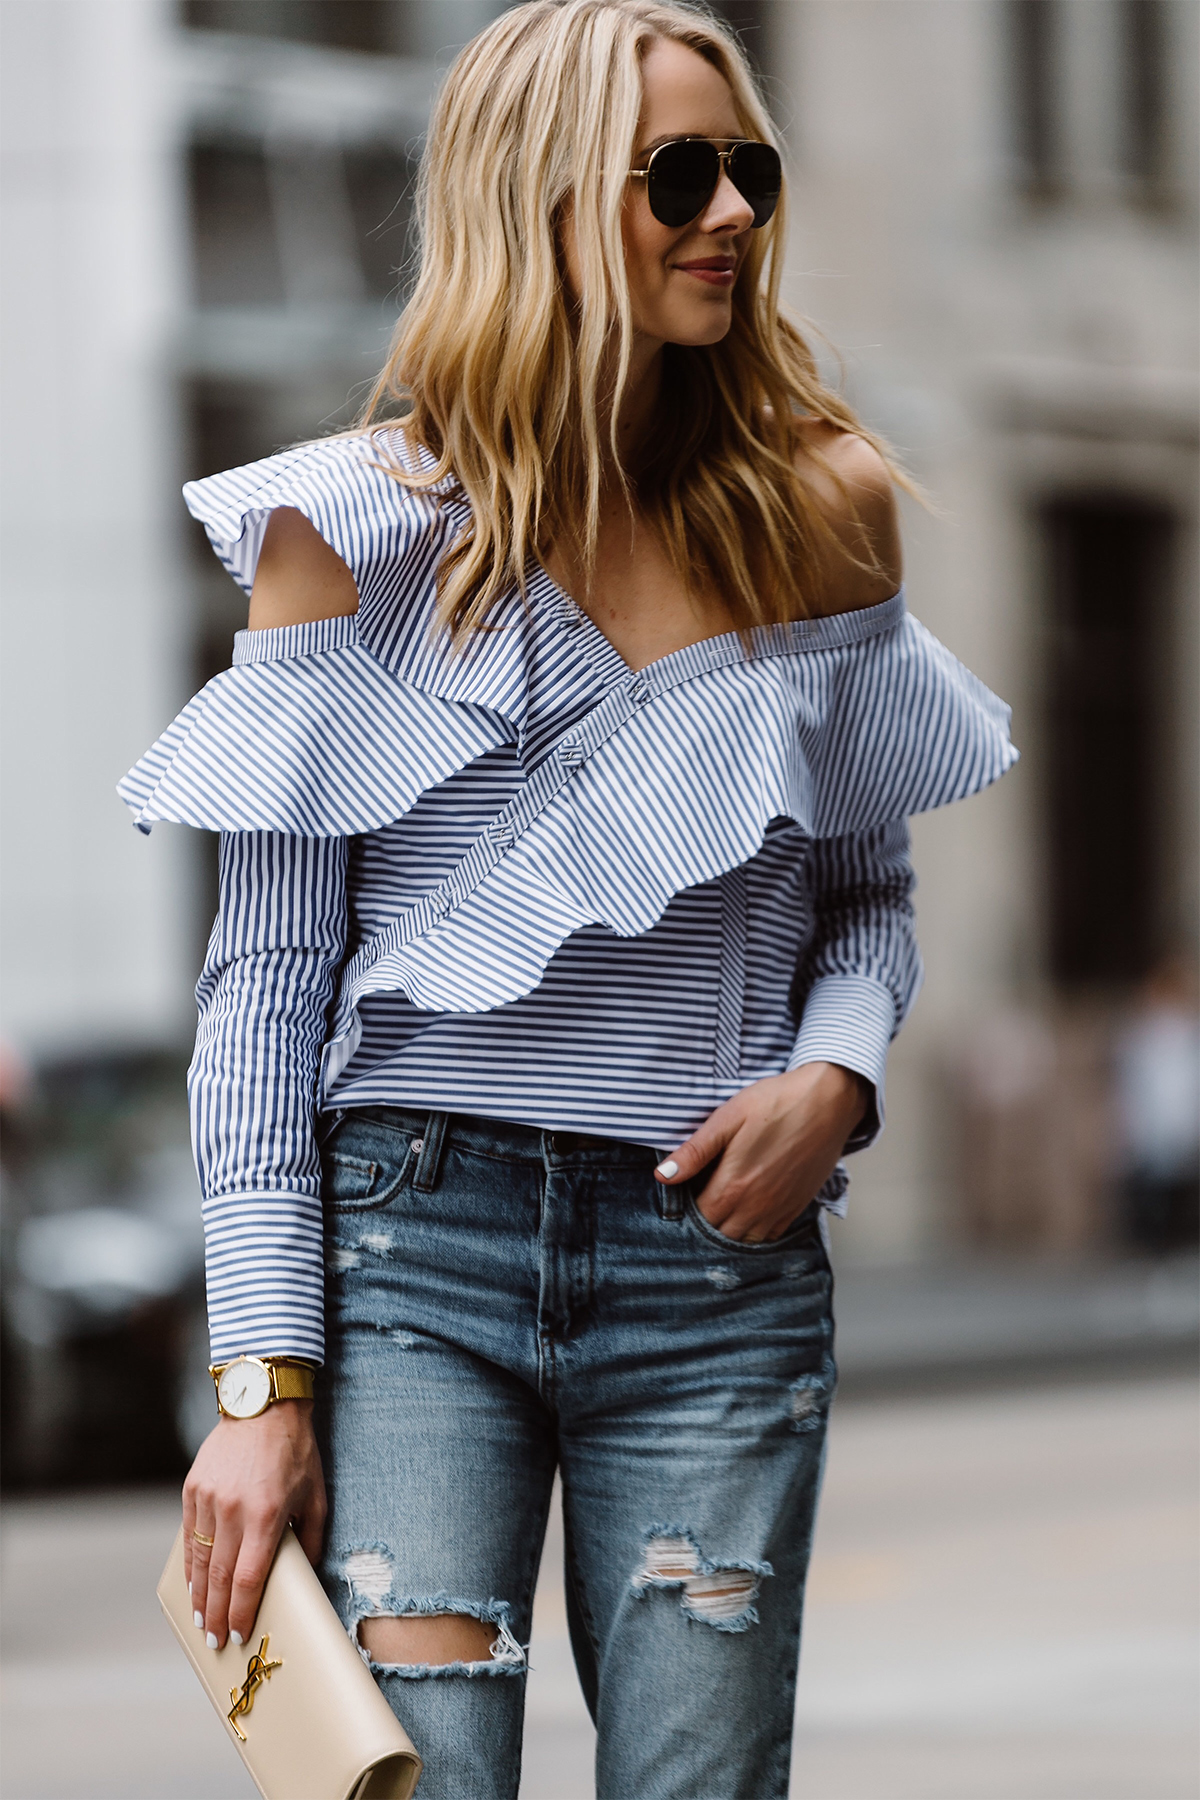 Ruffled to and jeans